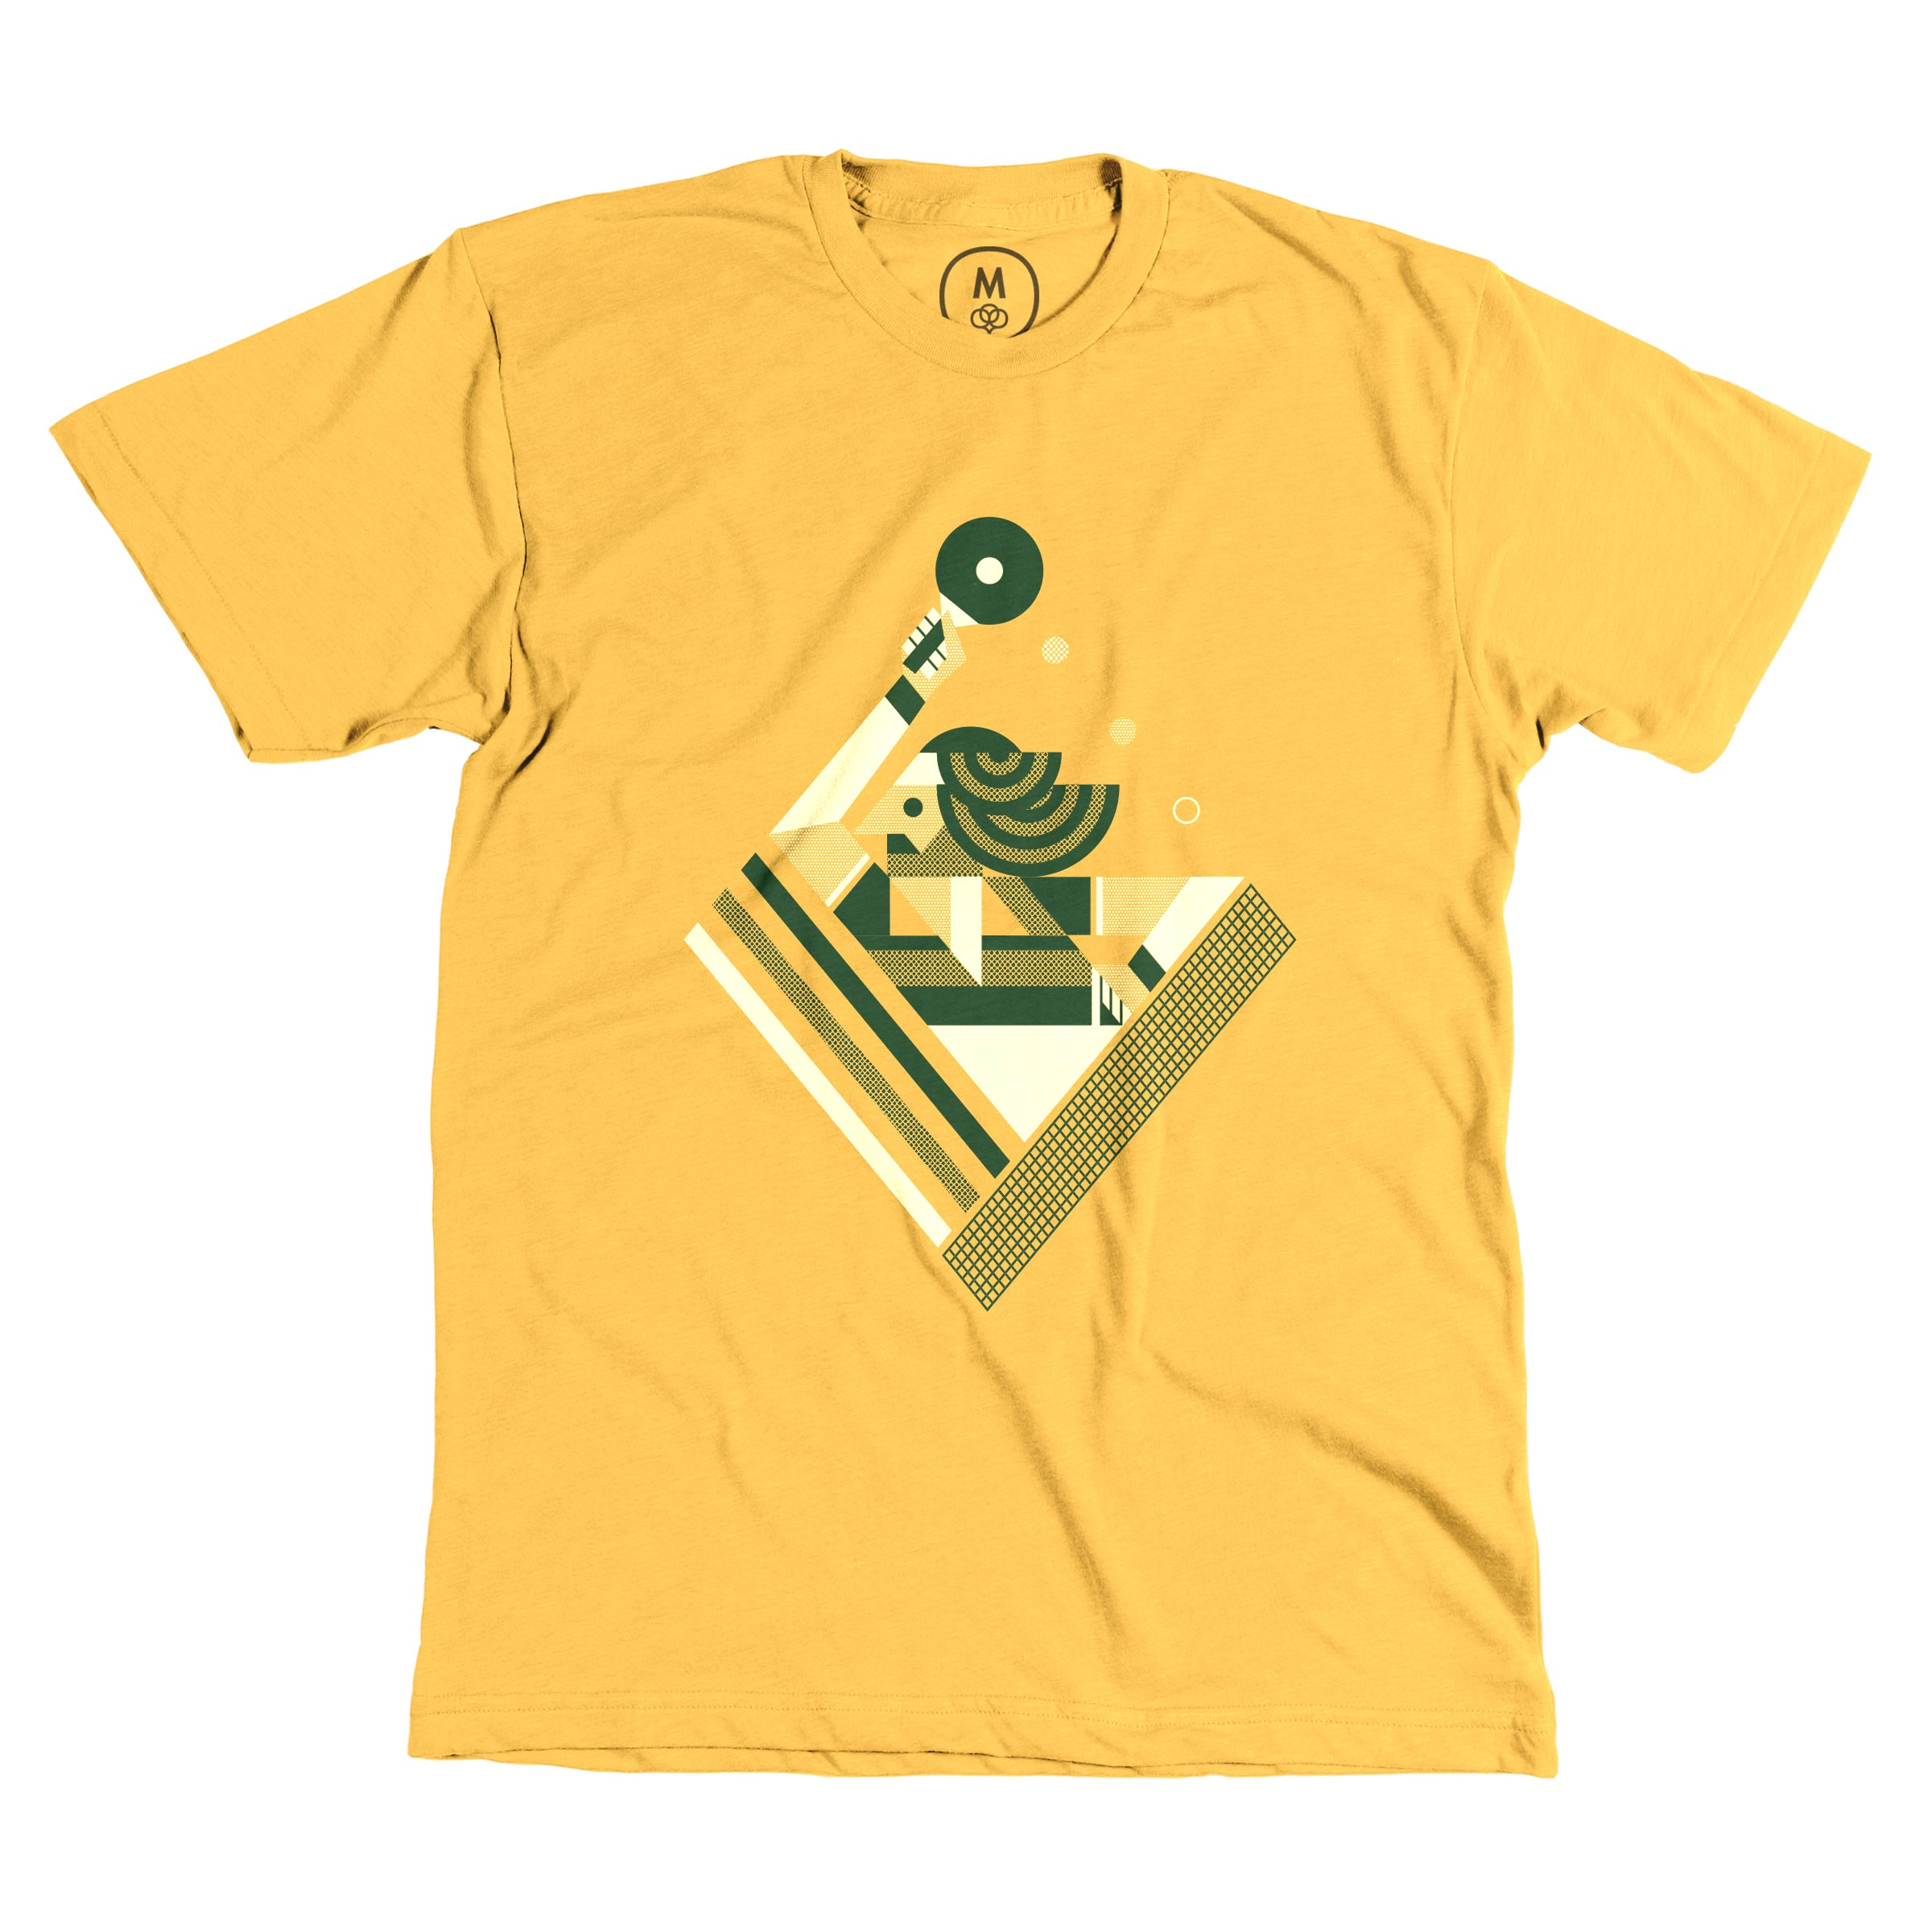 Sir Ping Pong T-shirt